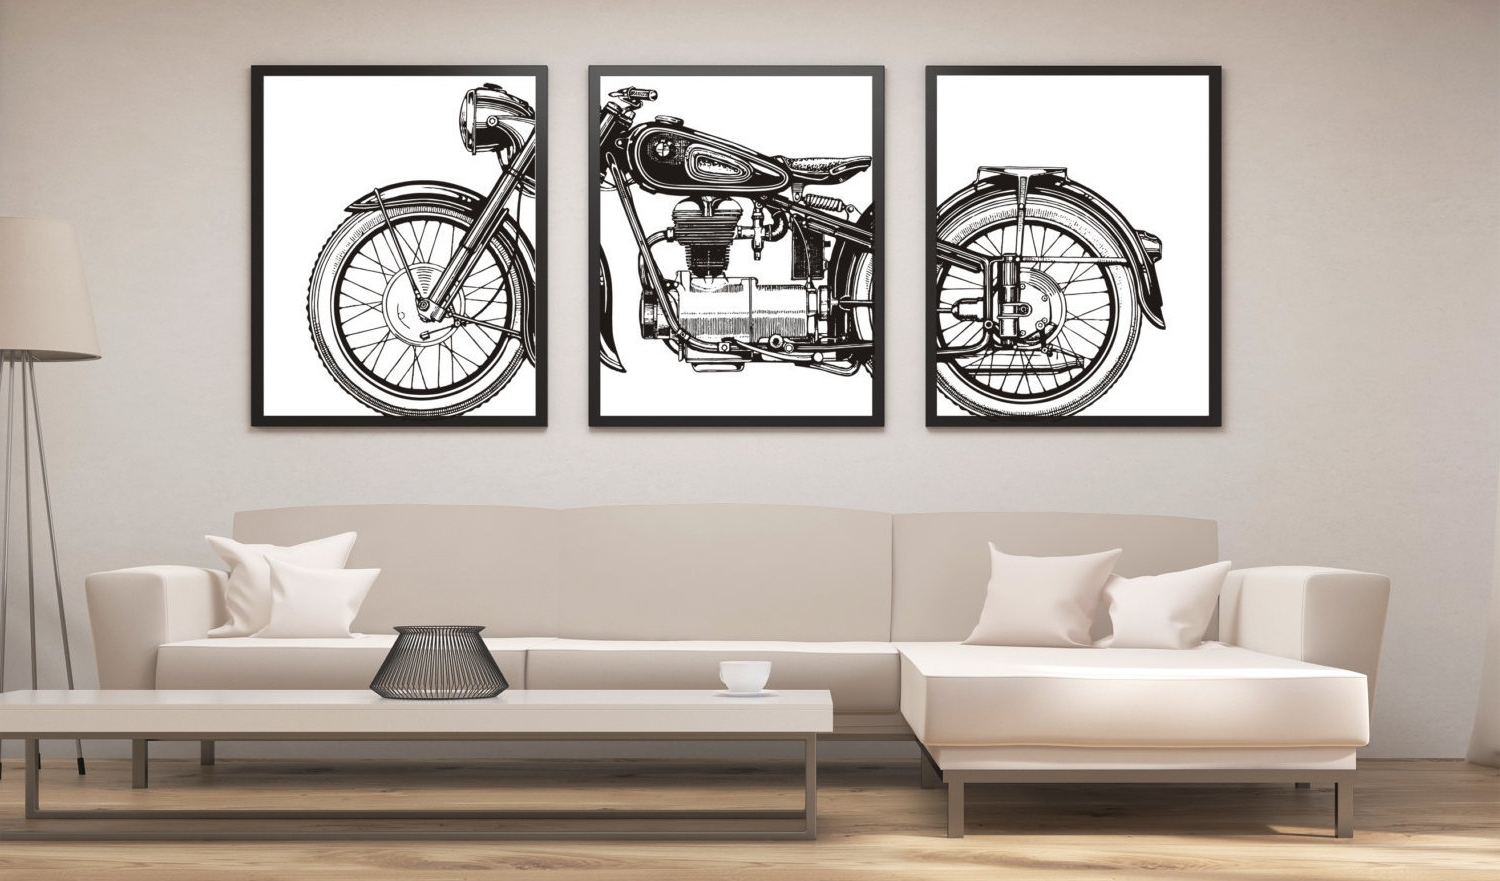 2017 Motorcycle Wall Art Print : Andrews Living Arts – Perfect Ideas Throughout Motorcycle Wall Art (View 1 of 15)